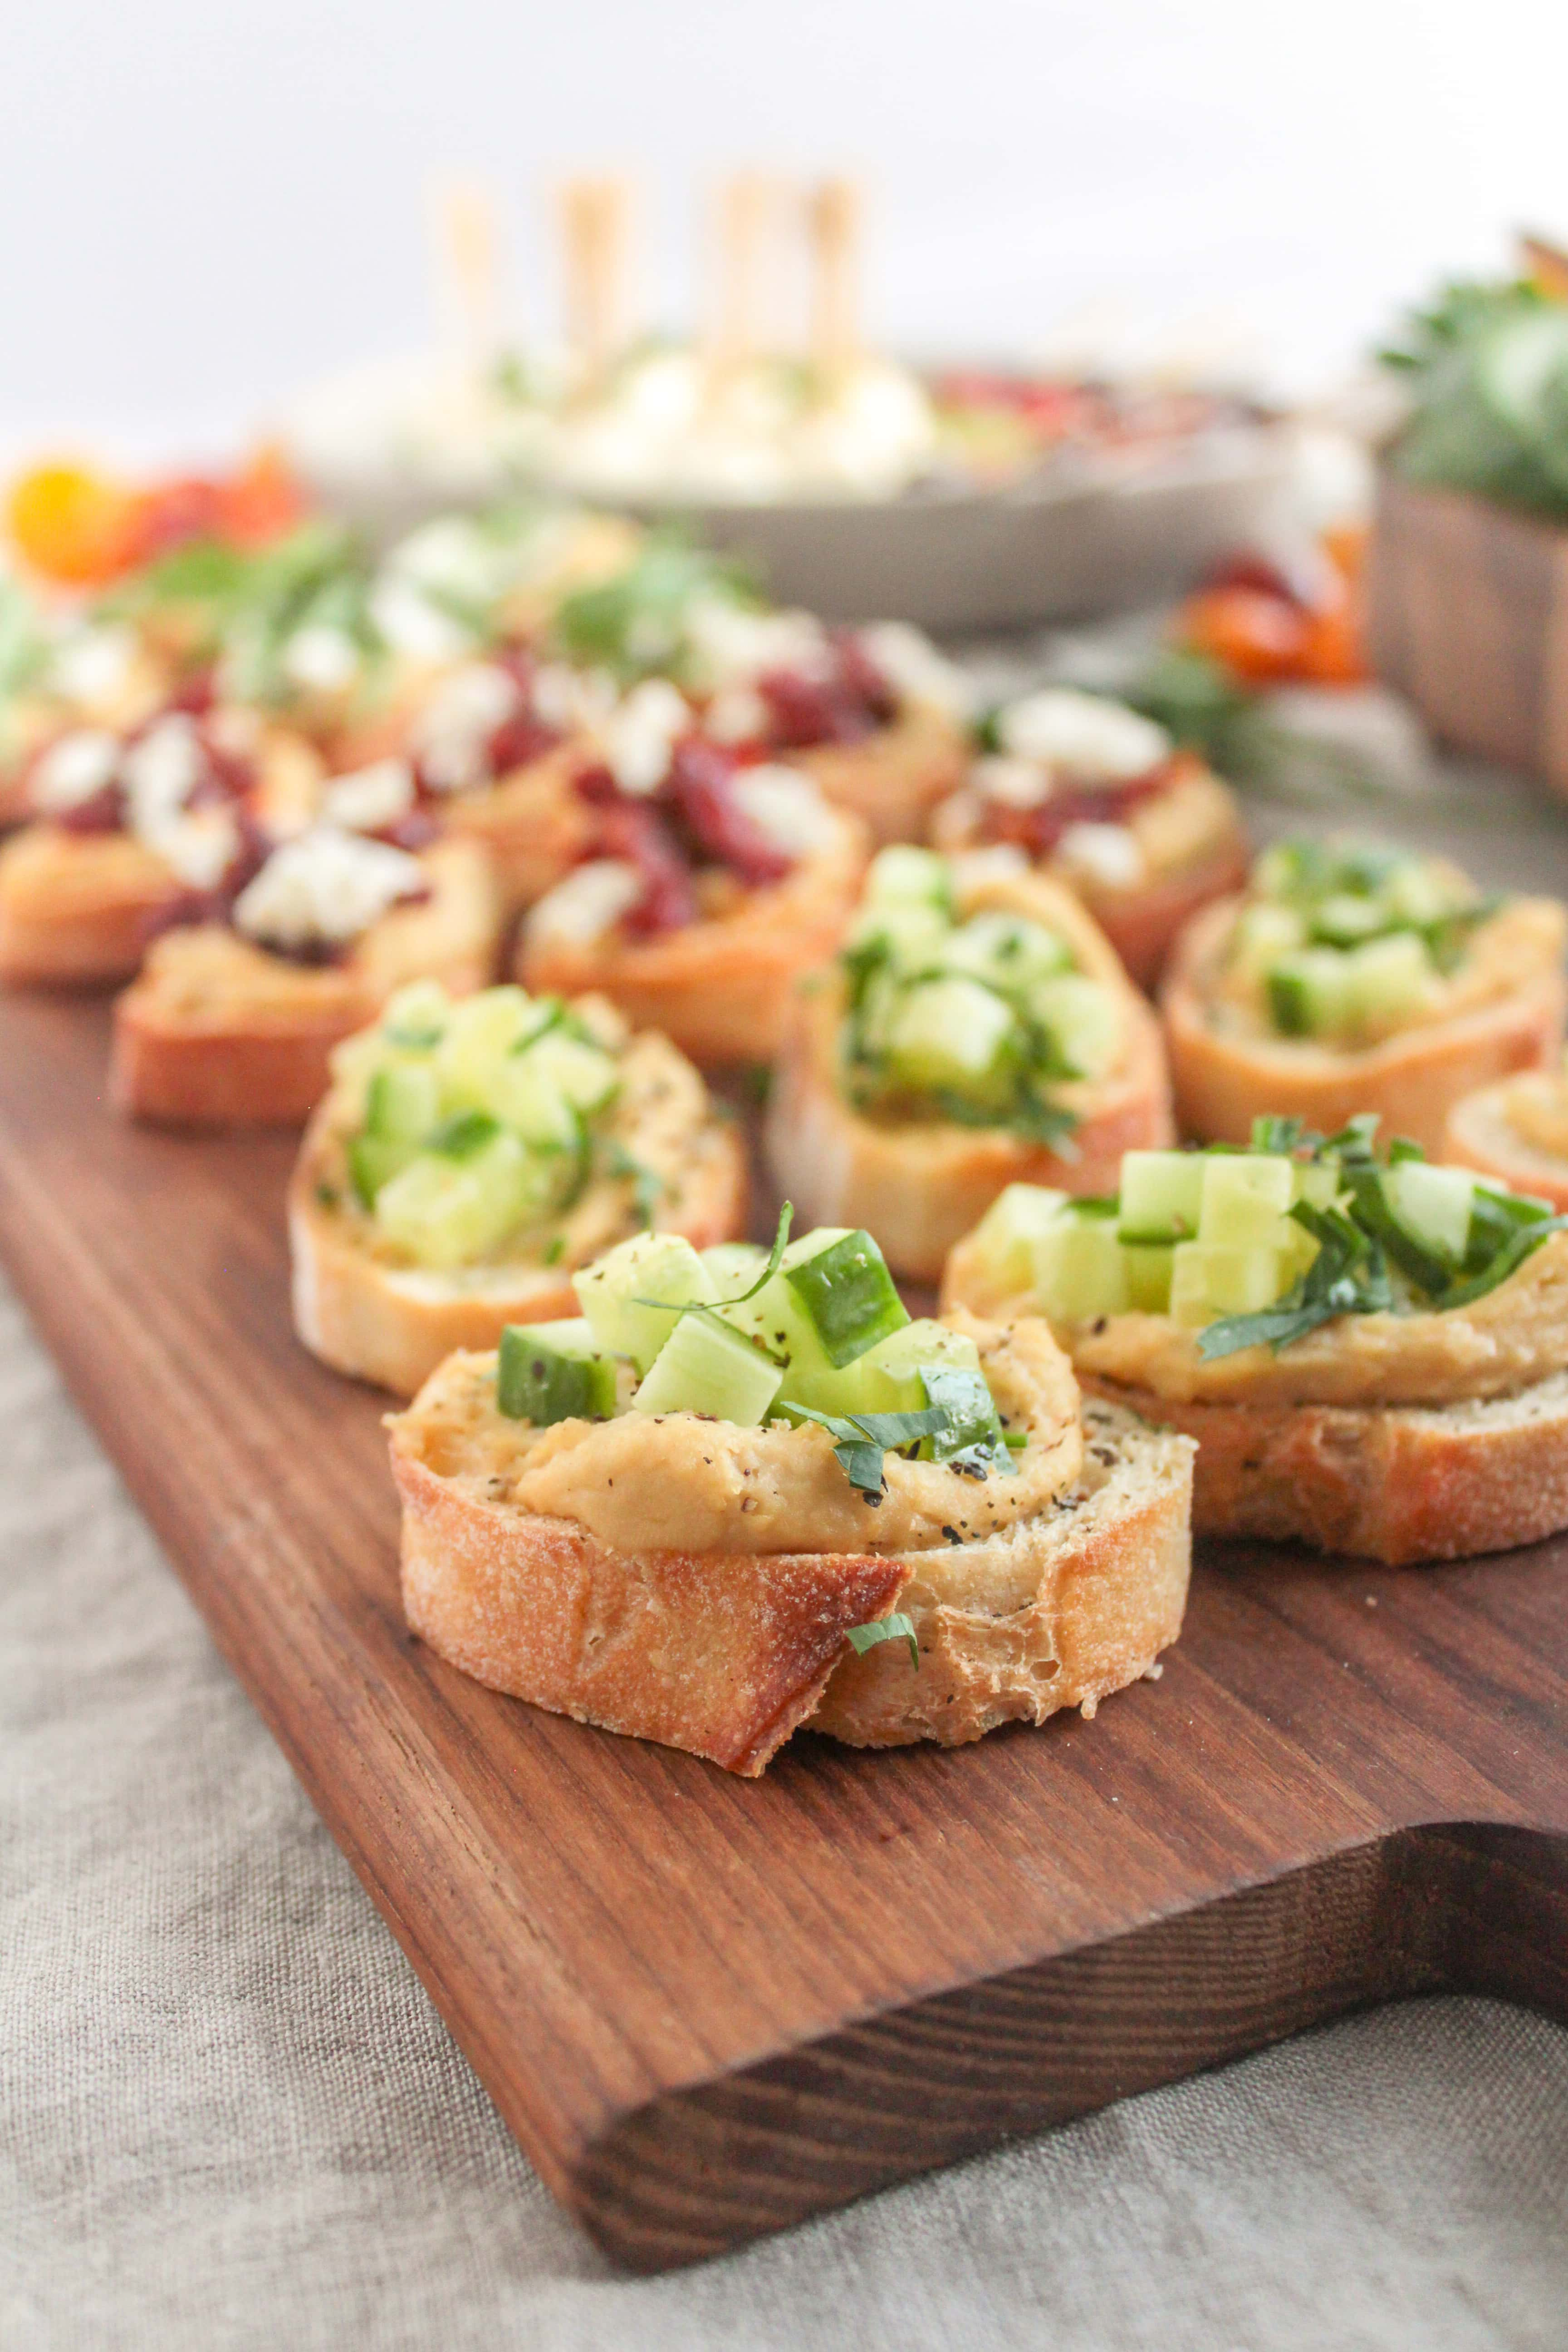 Healthy throw together super bowl snacks ideas fannetastic food healthy superbowl snack ideas from registered dietitian anne mauney of fannetasticfood forumfinder Image collections